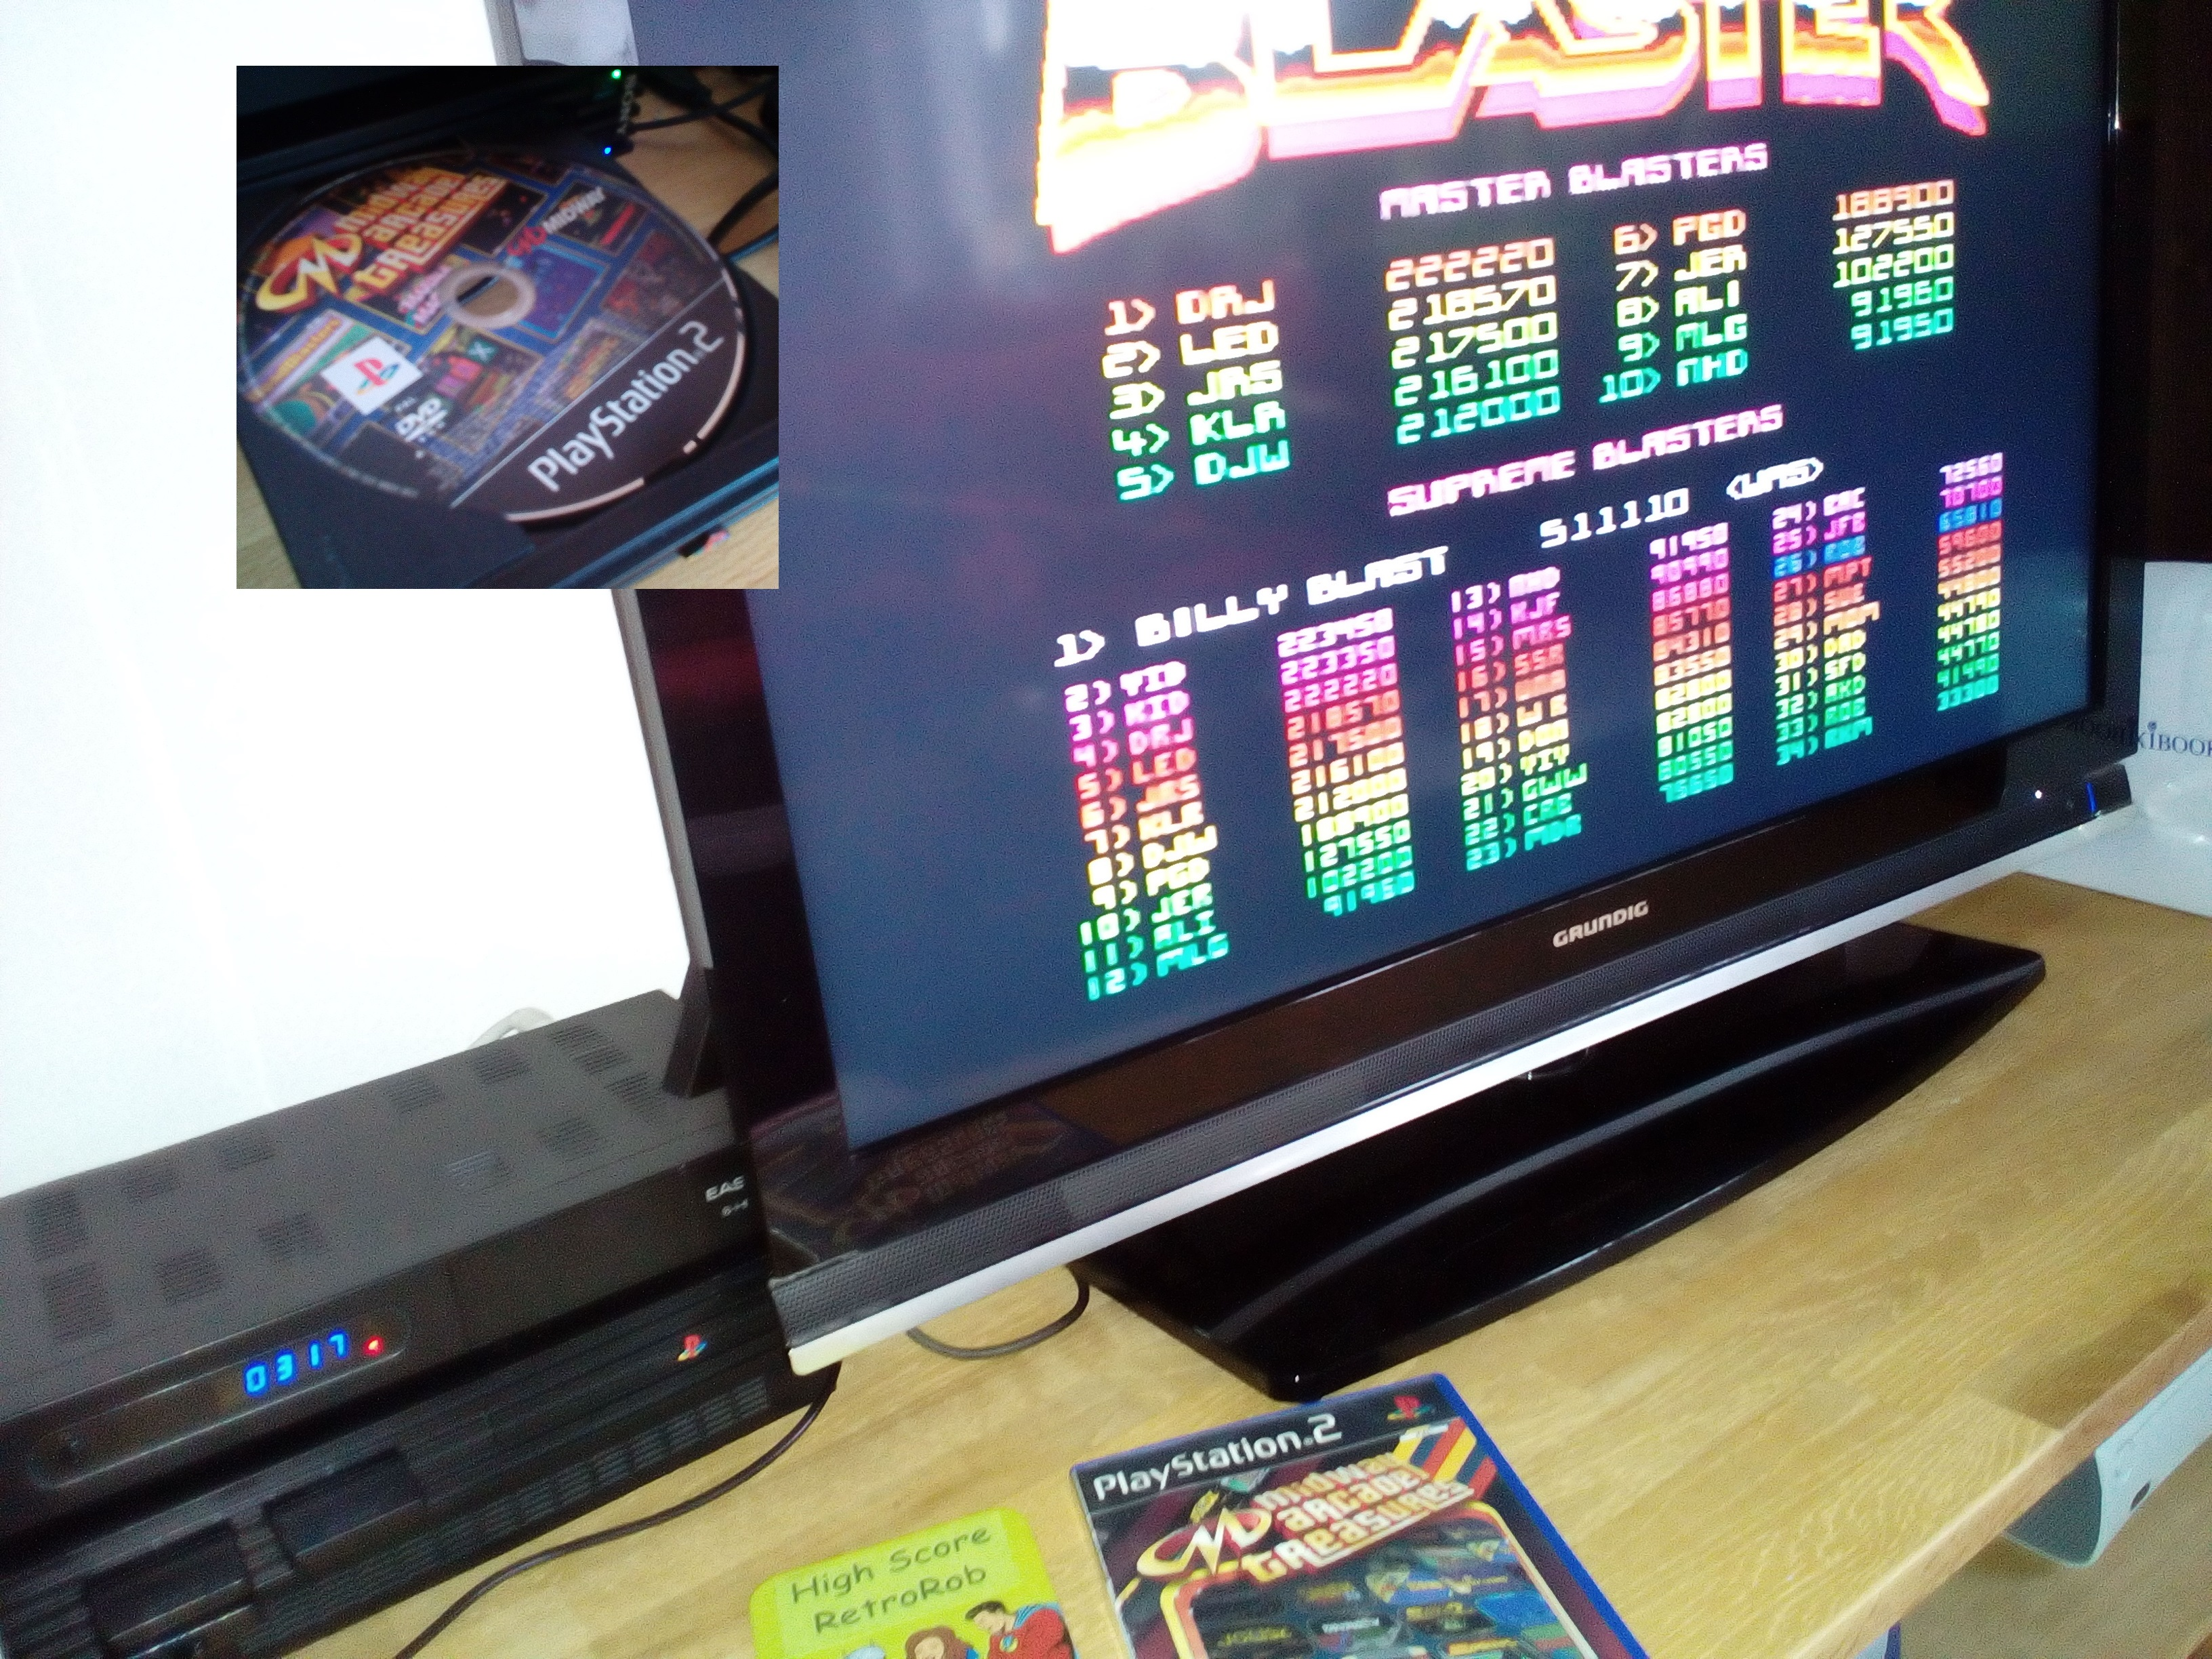 Midway Arcade Treasures: Blaster 65,810 points